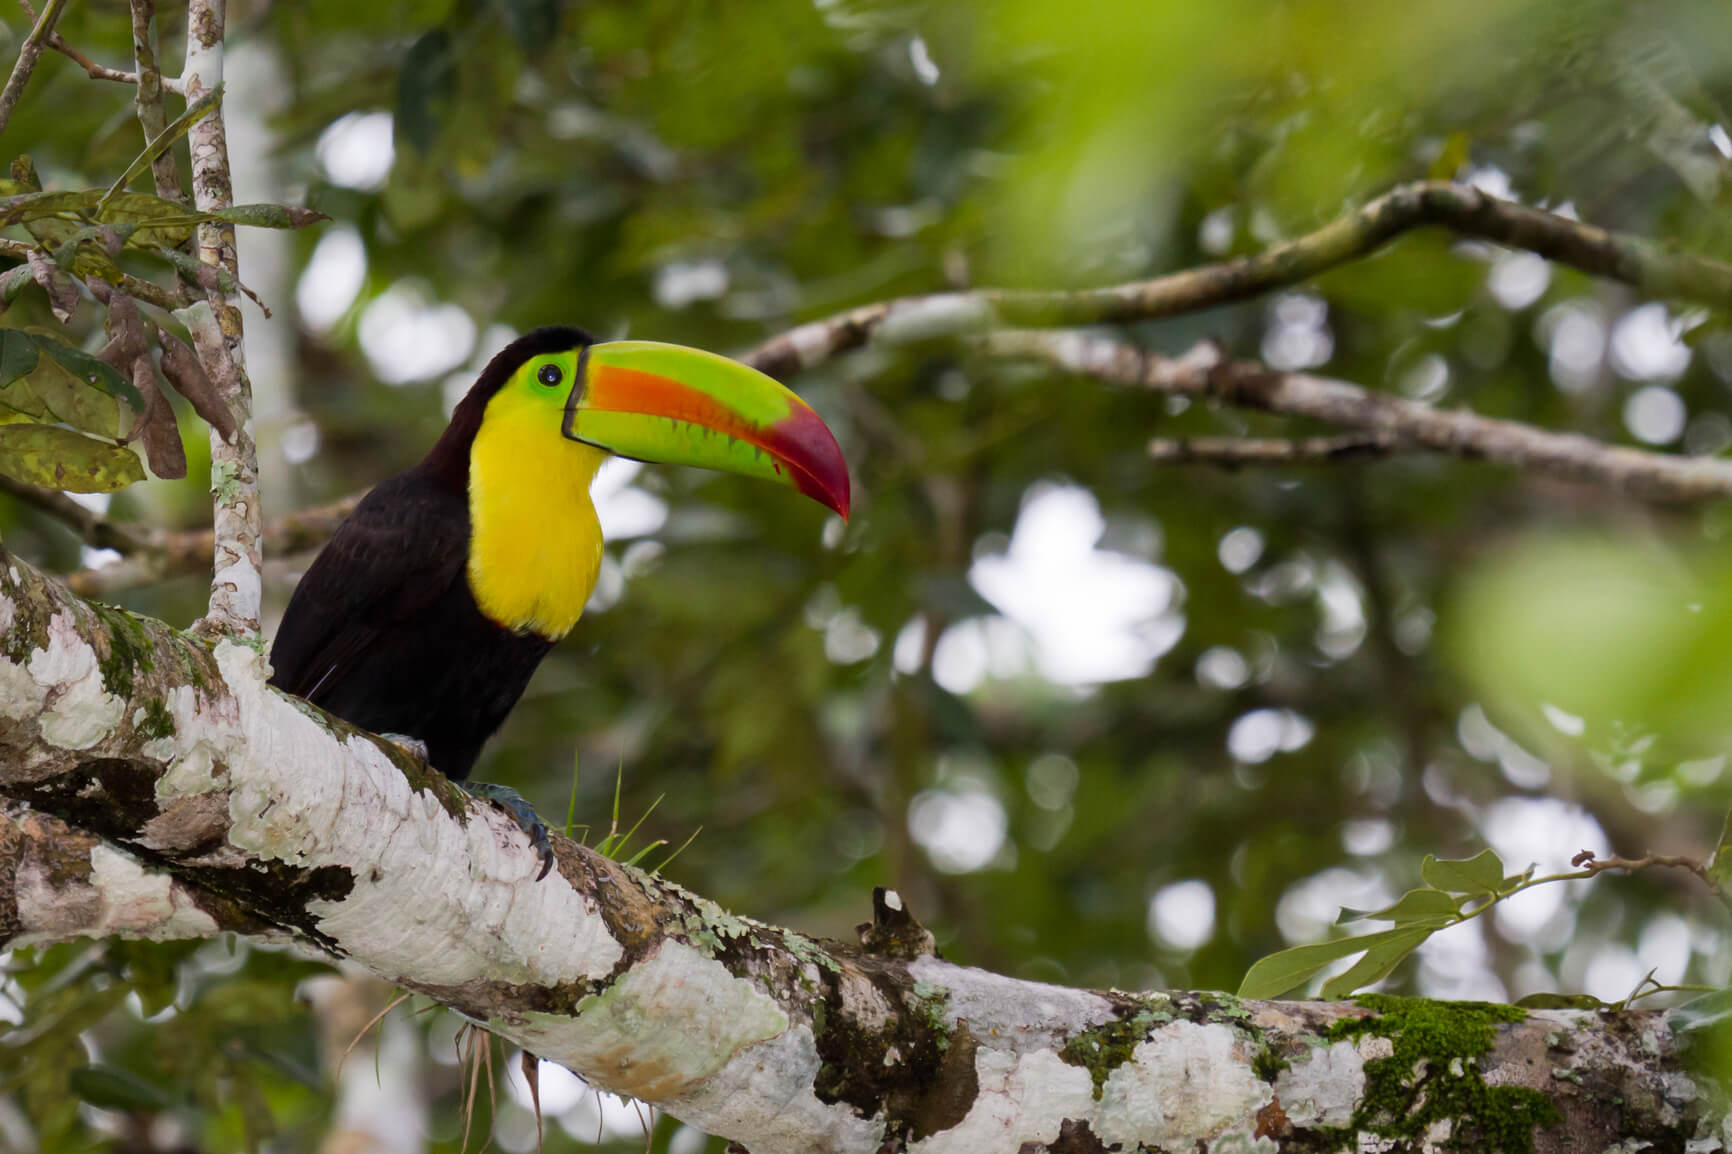 Non-stop from London, UK to Liberia, Costa Rica for only £299 roundtrip